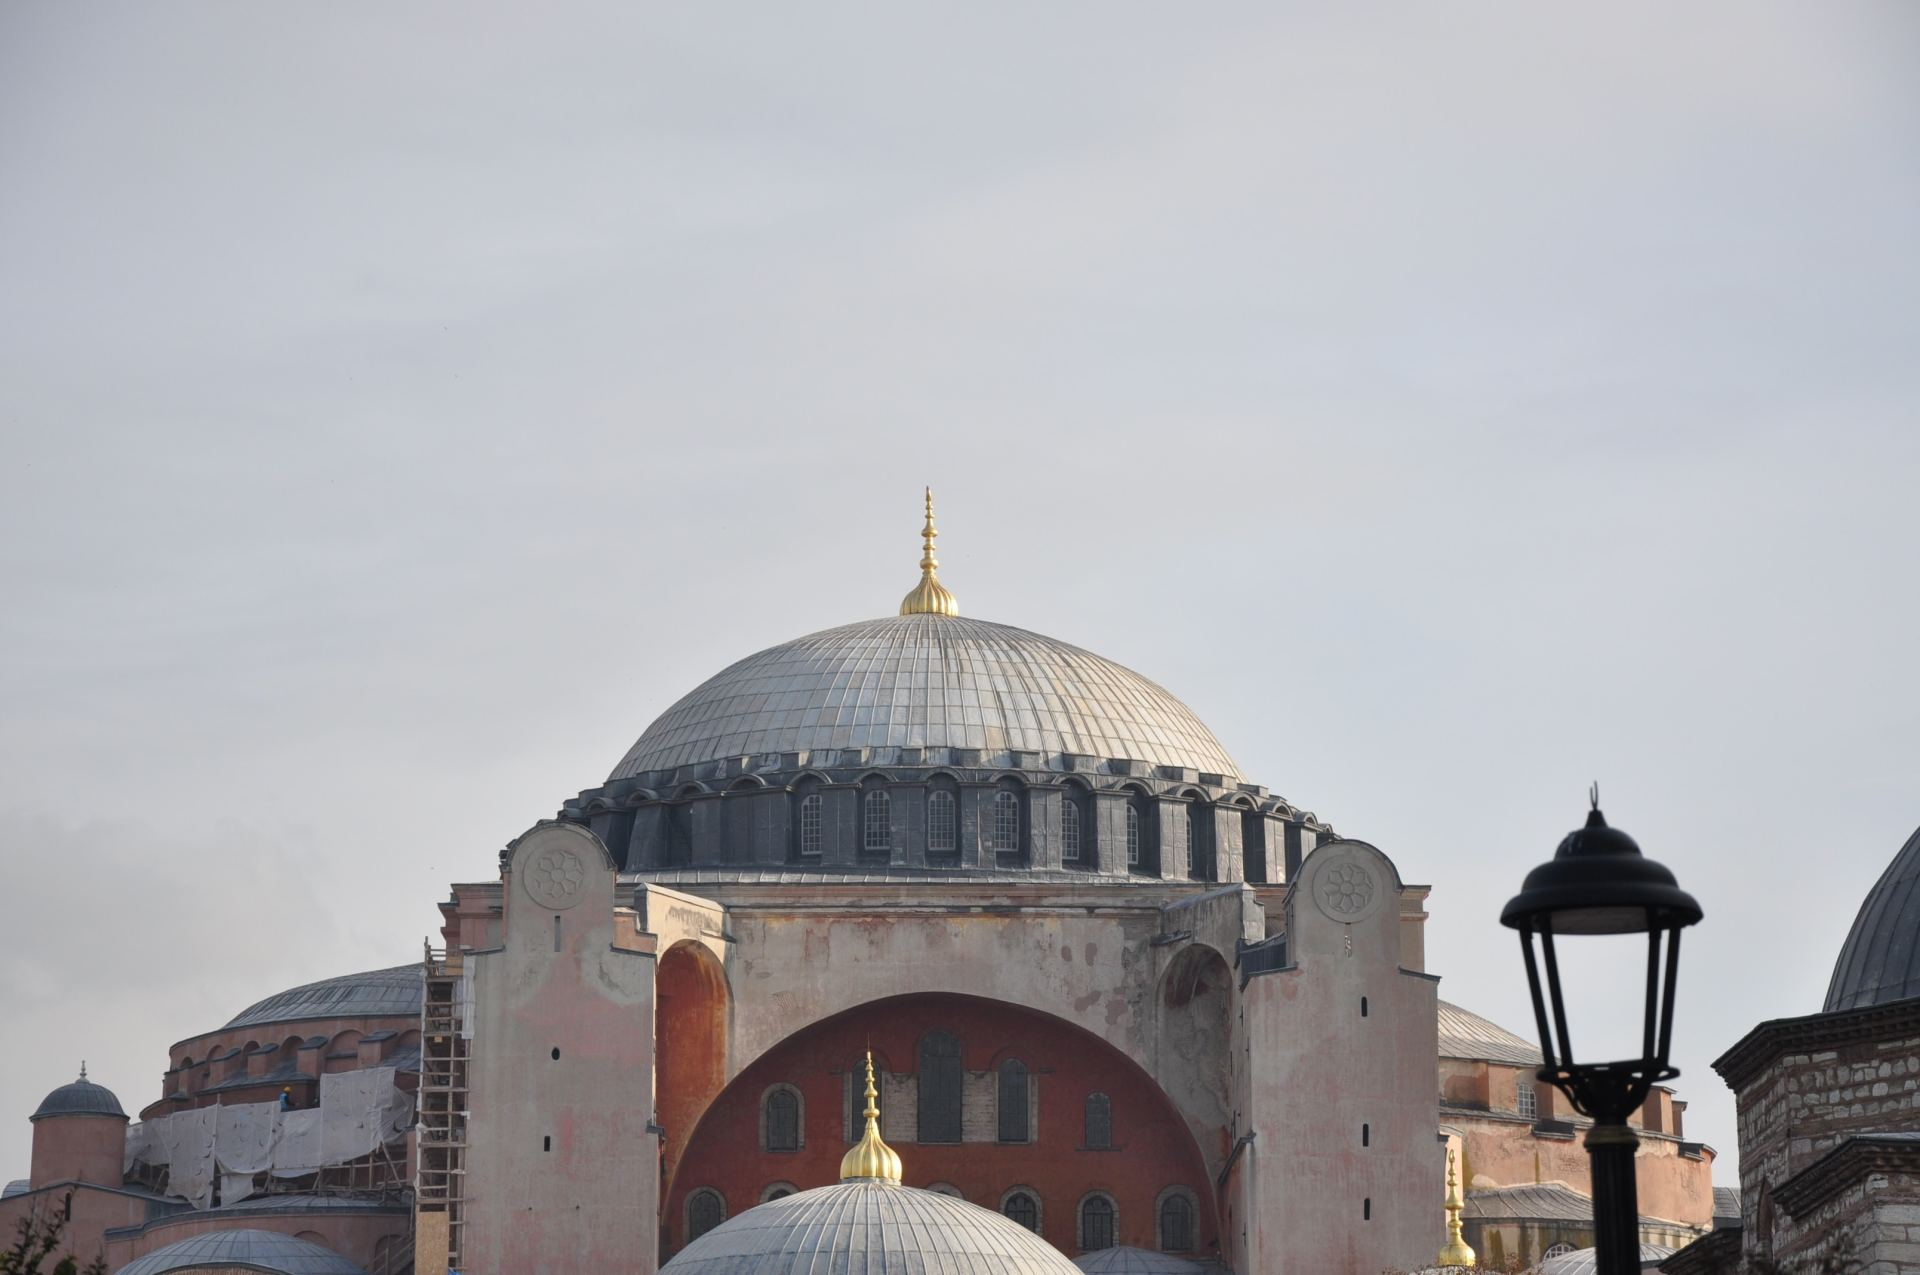 Hagia Sophia: Construction and Reconstruction